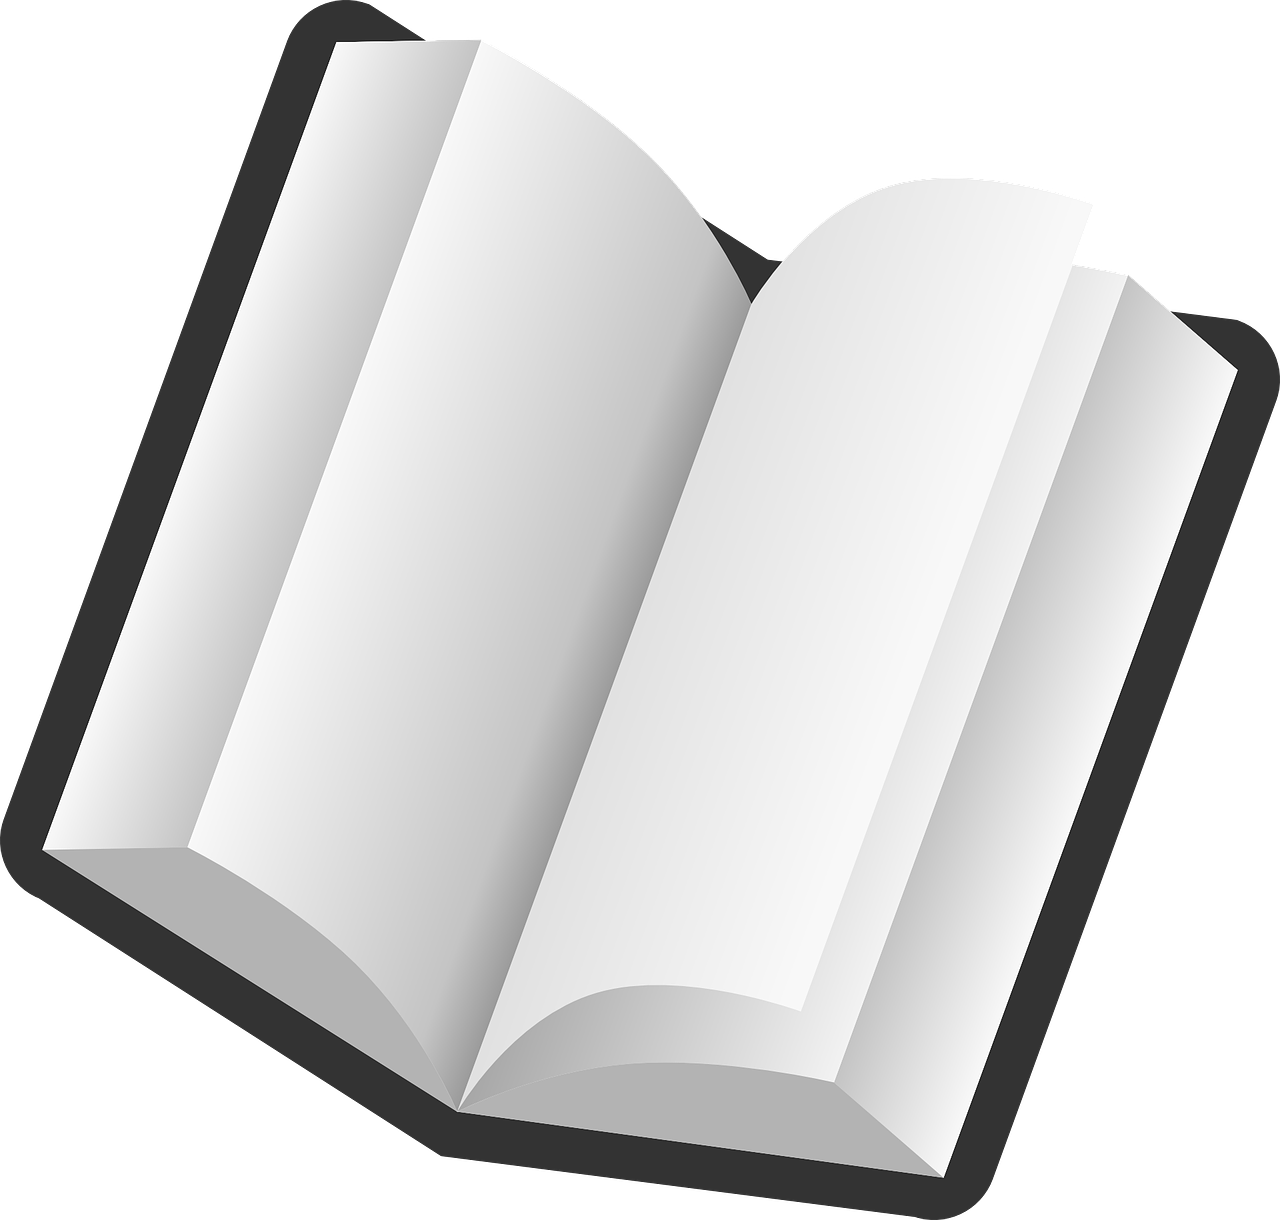 Book open blank pages. Textbook clipart transparent background